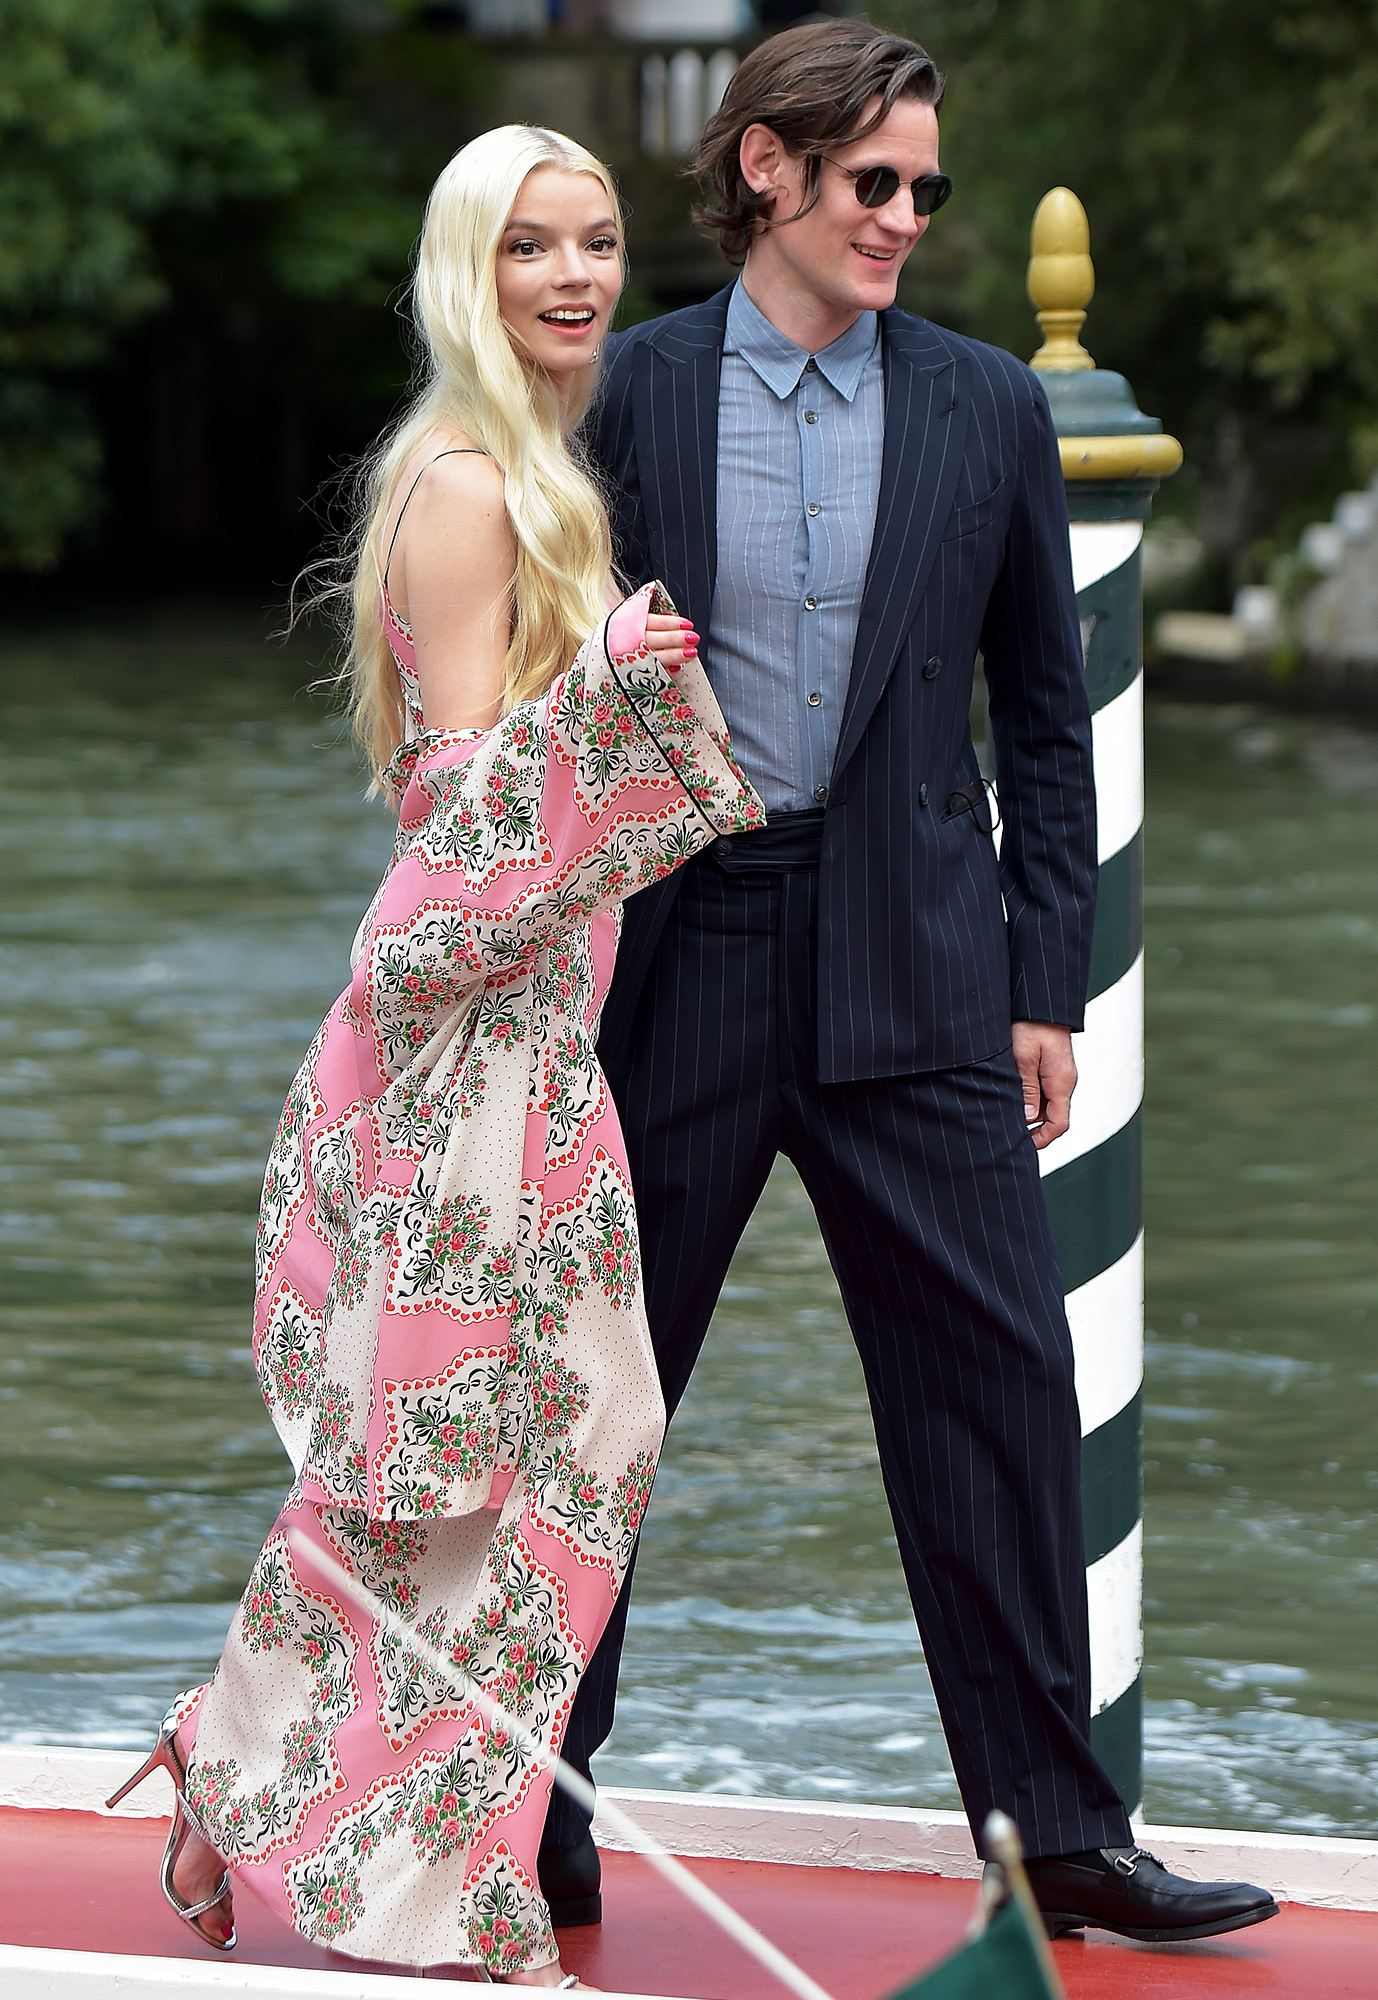 Anya Taylor-Joy and Matt Smith are seen arriving at the 78th Venice International Film Festival on September 04, 2021 in Venice, Italy.